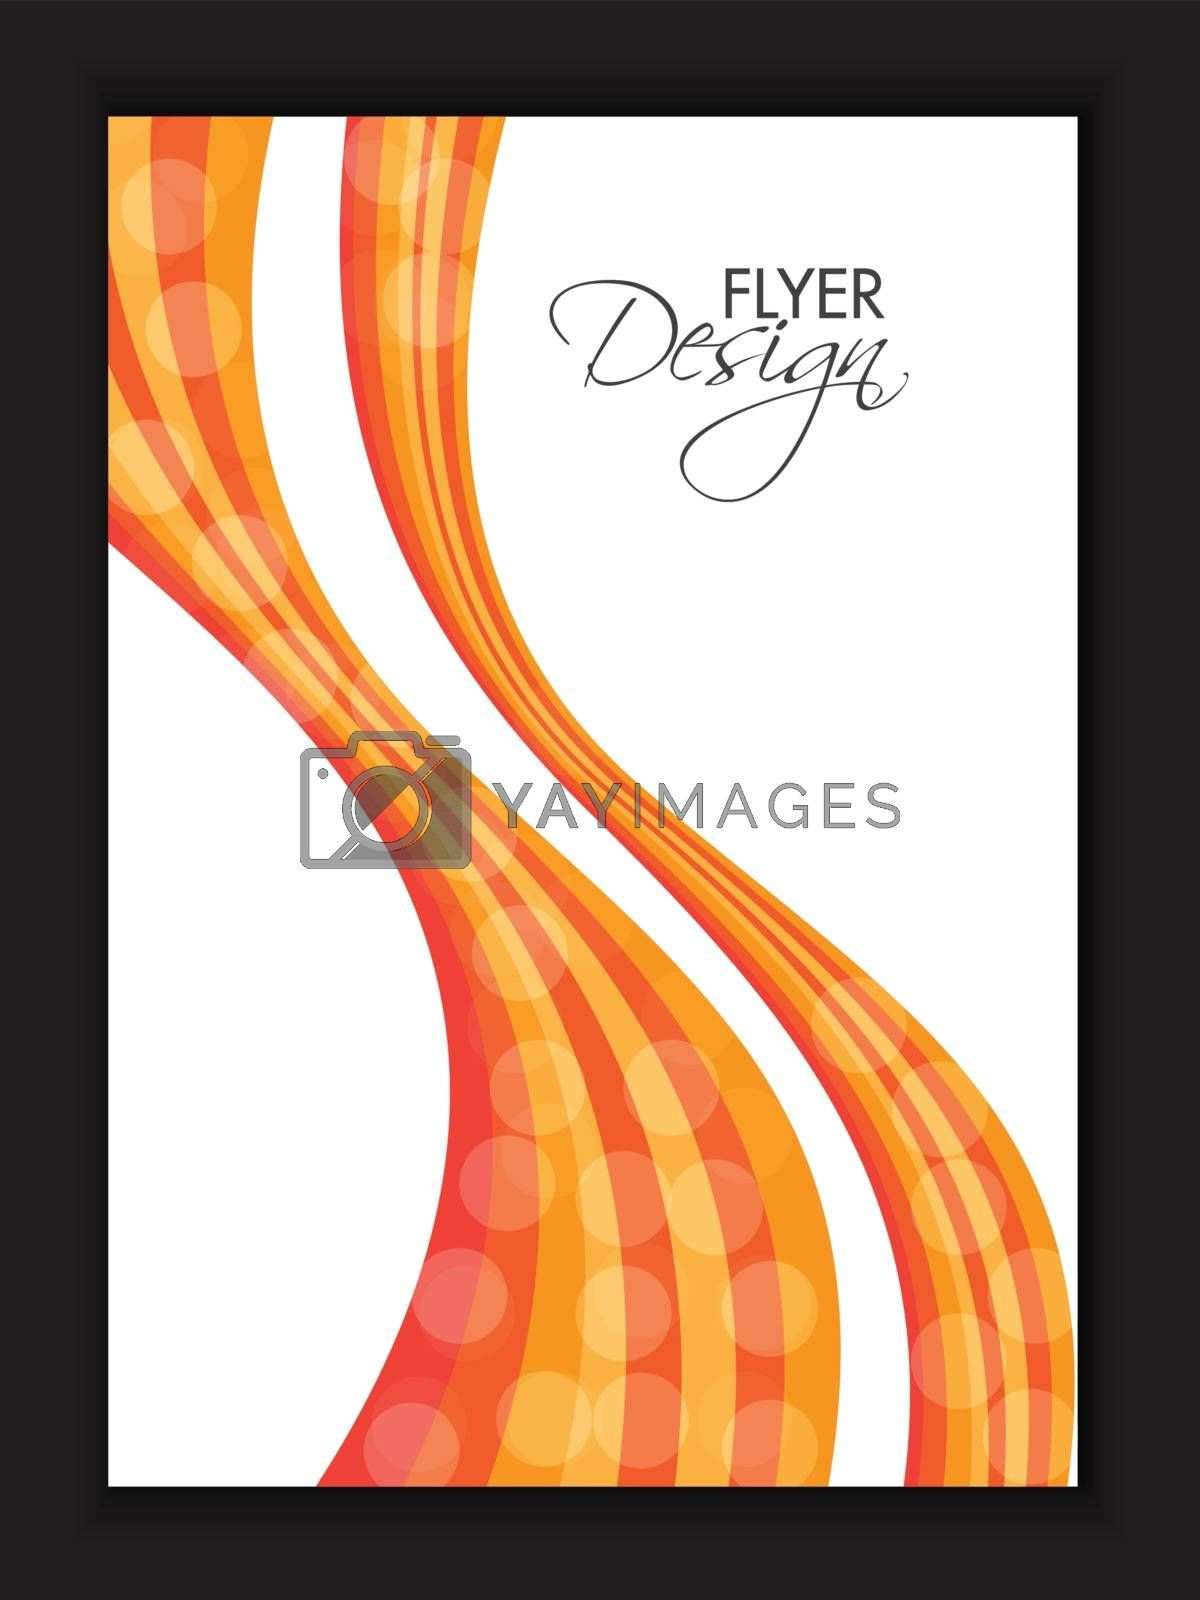 Abstract waves decorated, Flyer, Template design for Business concept.